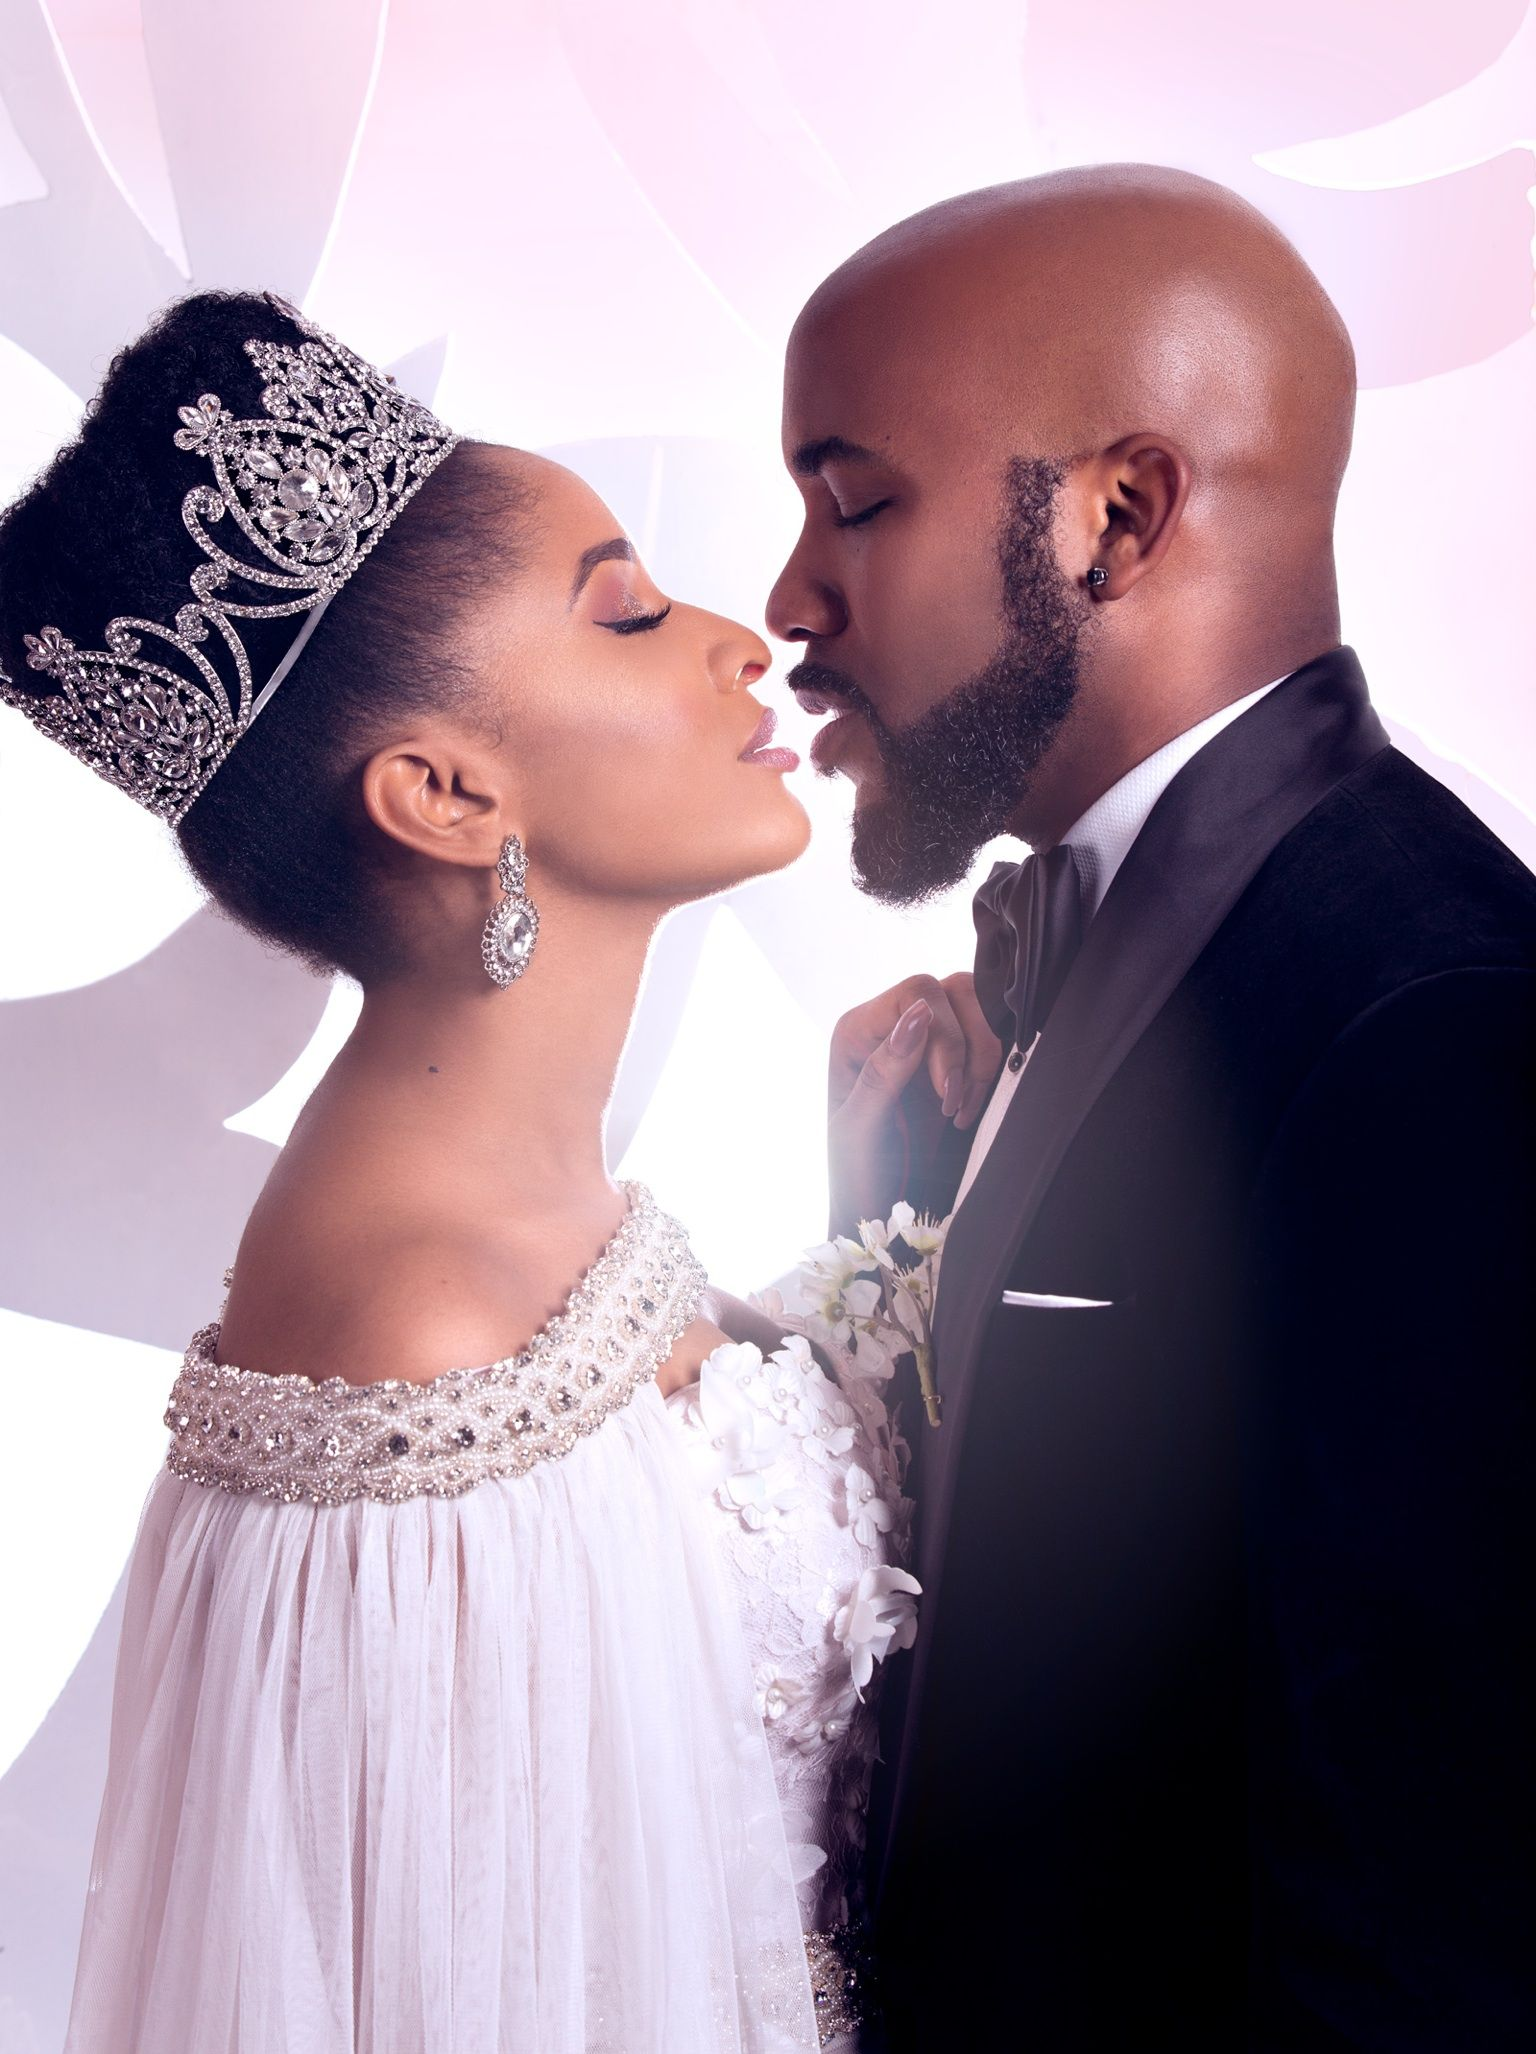 Banky W And Adesua Etomi For Their Movie The Wedding Party 2016 Natural Wedding Hairstyles Natural Hair Wedding Wedding Couples